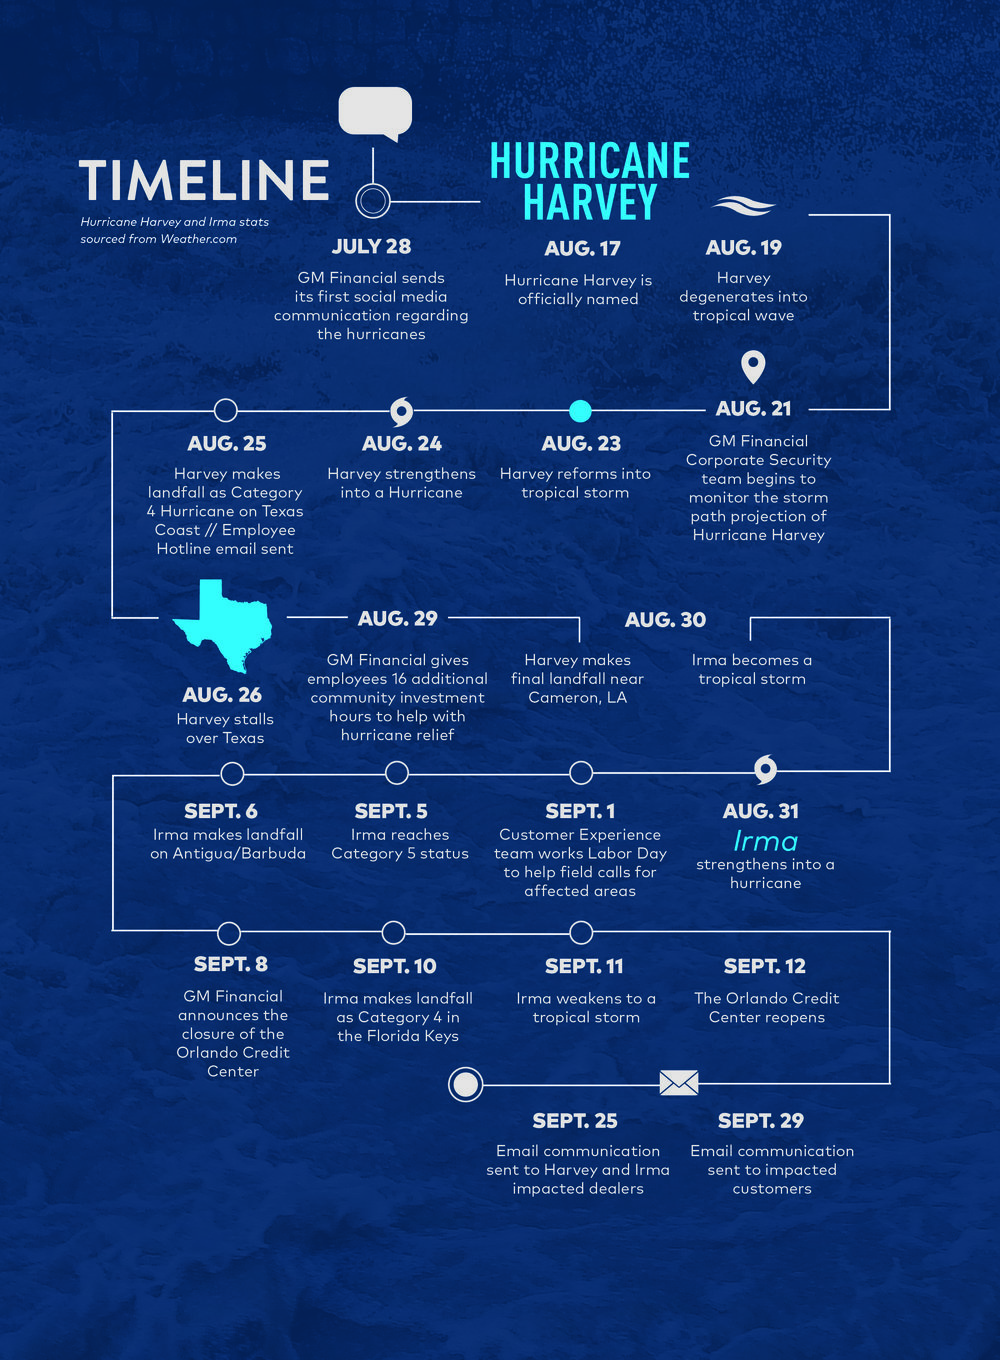 Hurricane Harvey Timeline2.jpg